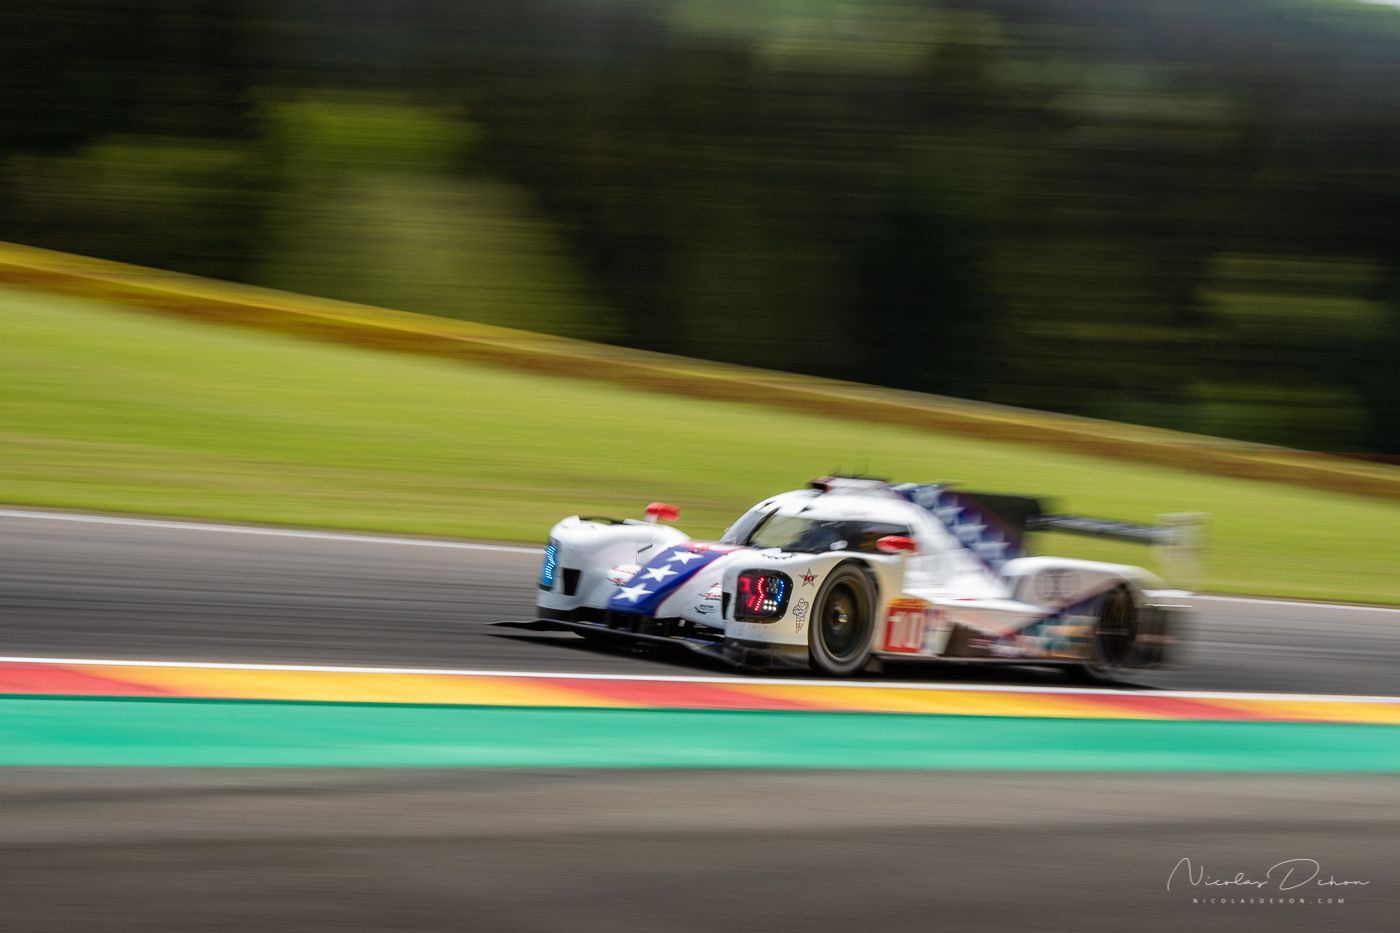 Wec 6 hours of spa-Francorchamps 2018